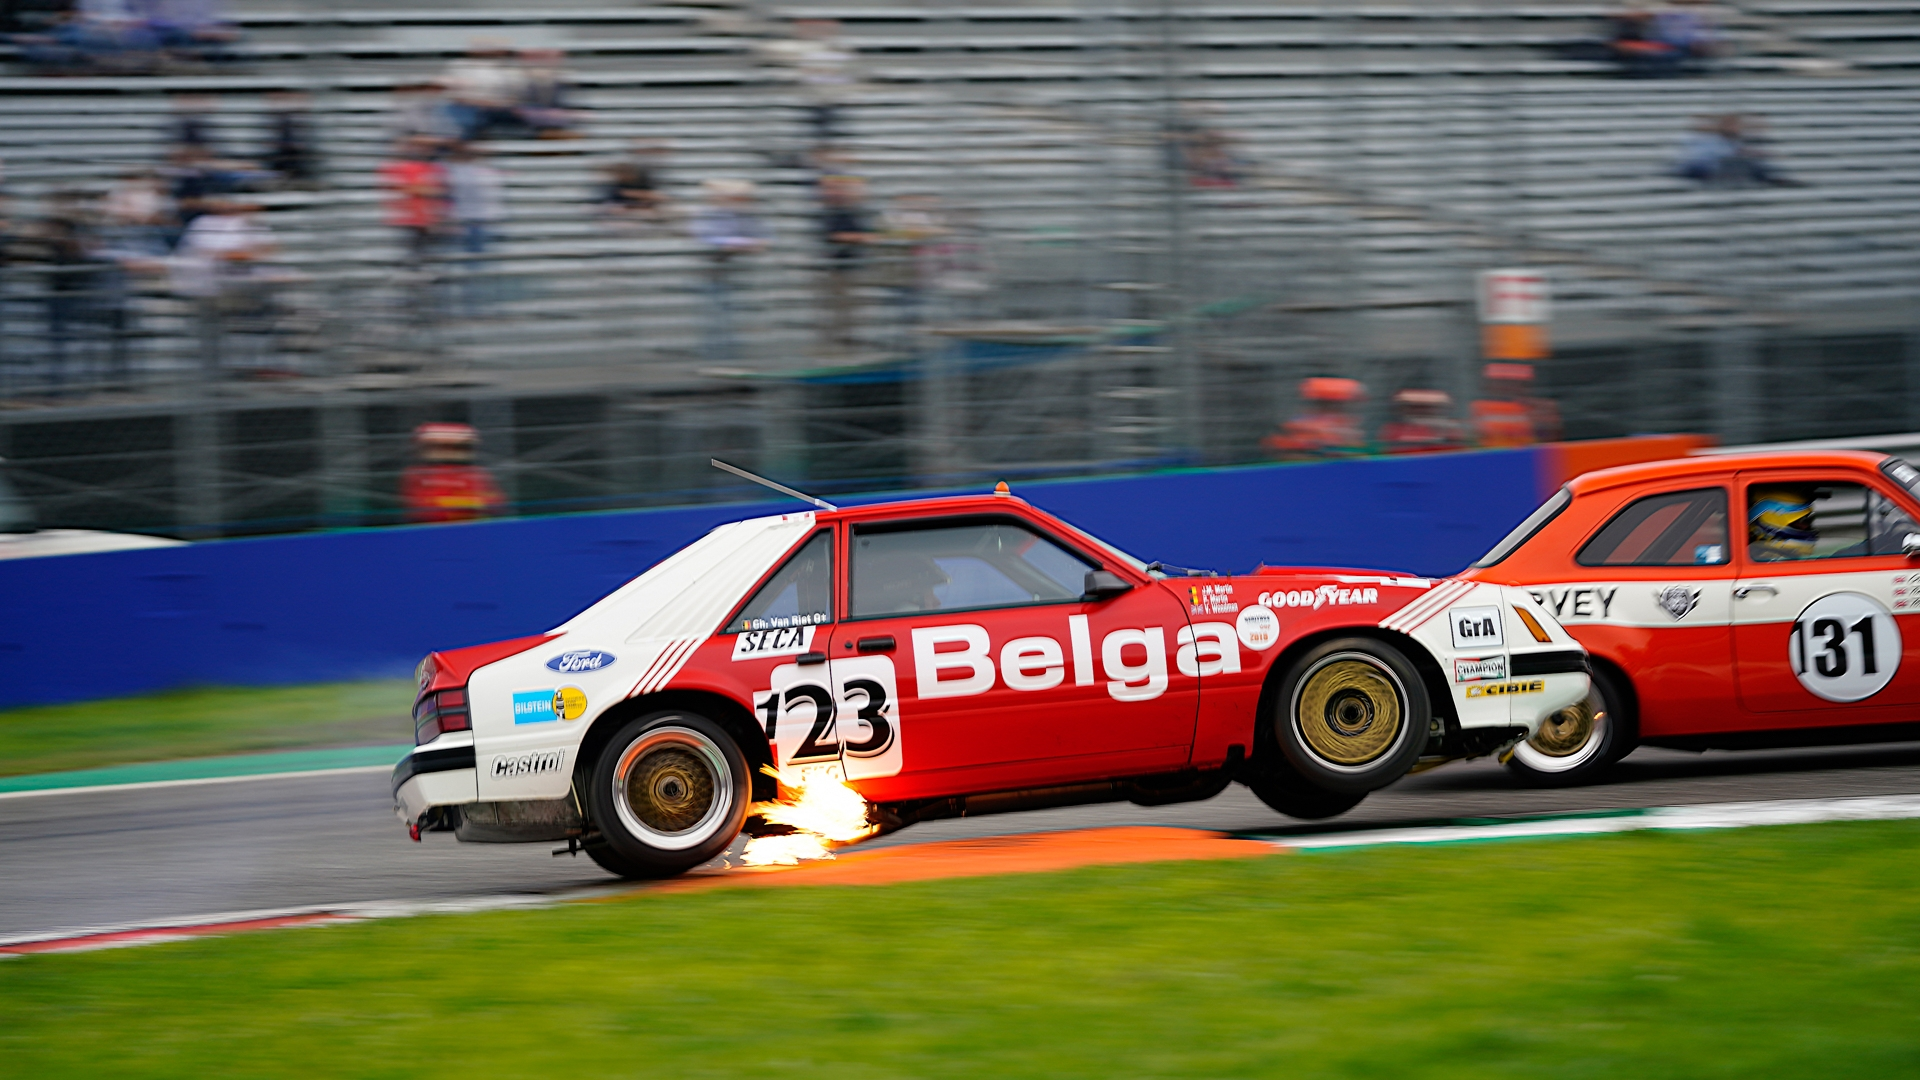 Belles prestations lors de Monza Historic & Spa Six Hours · Gipimotor